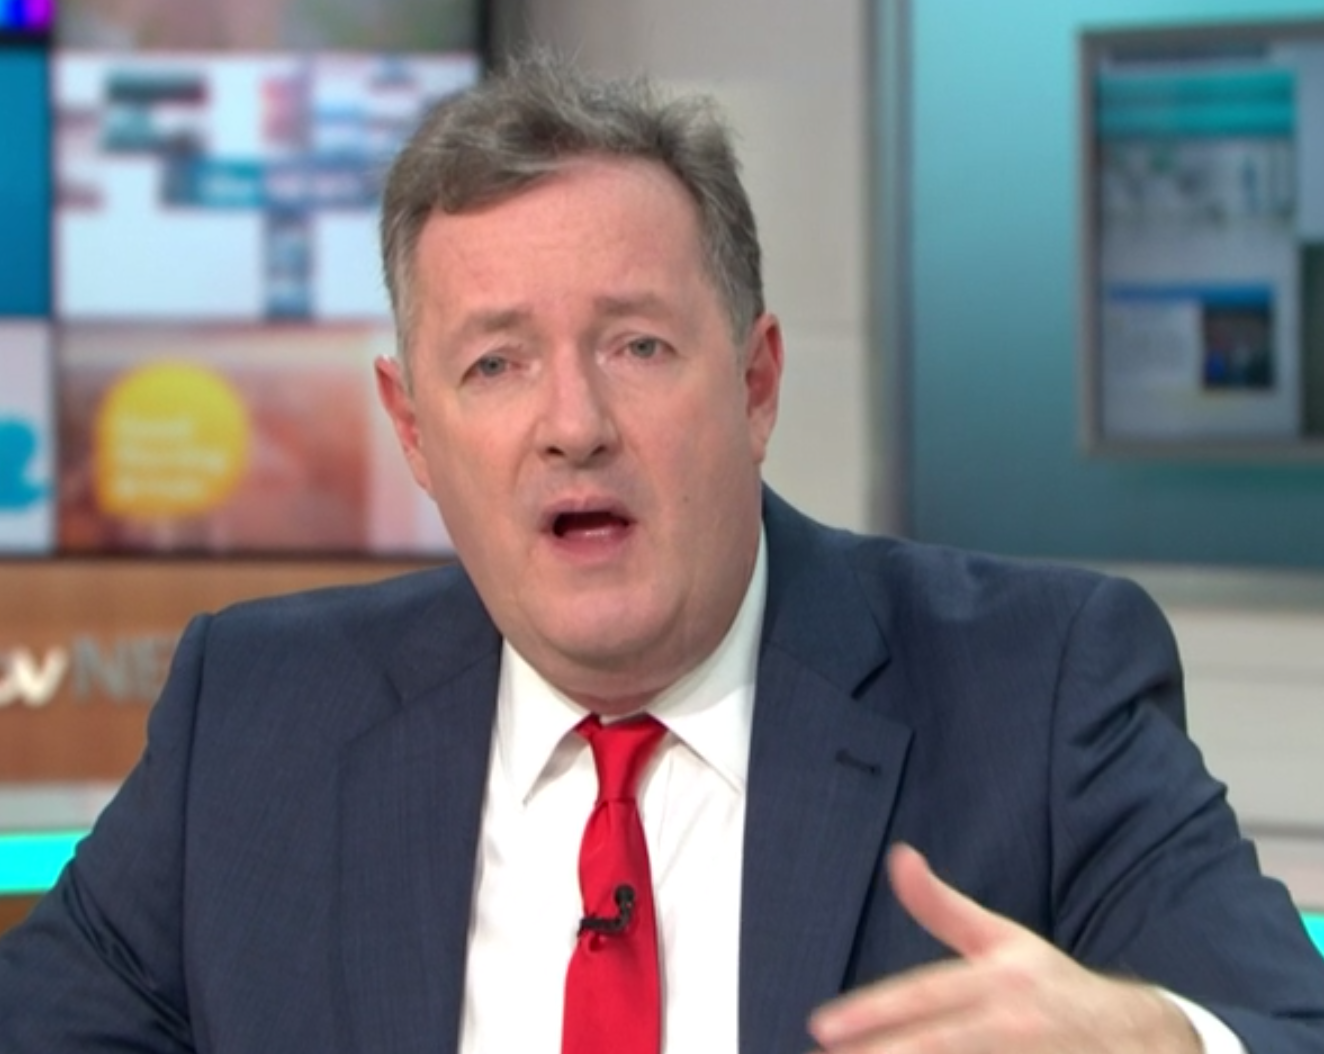 Piers Morgan sparks frenzied speculation with cryptic message to fans